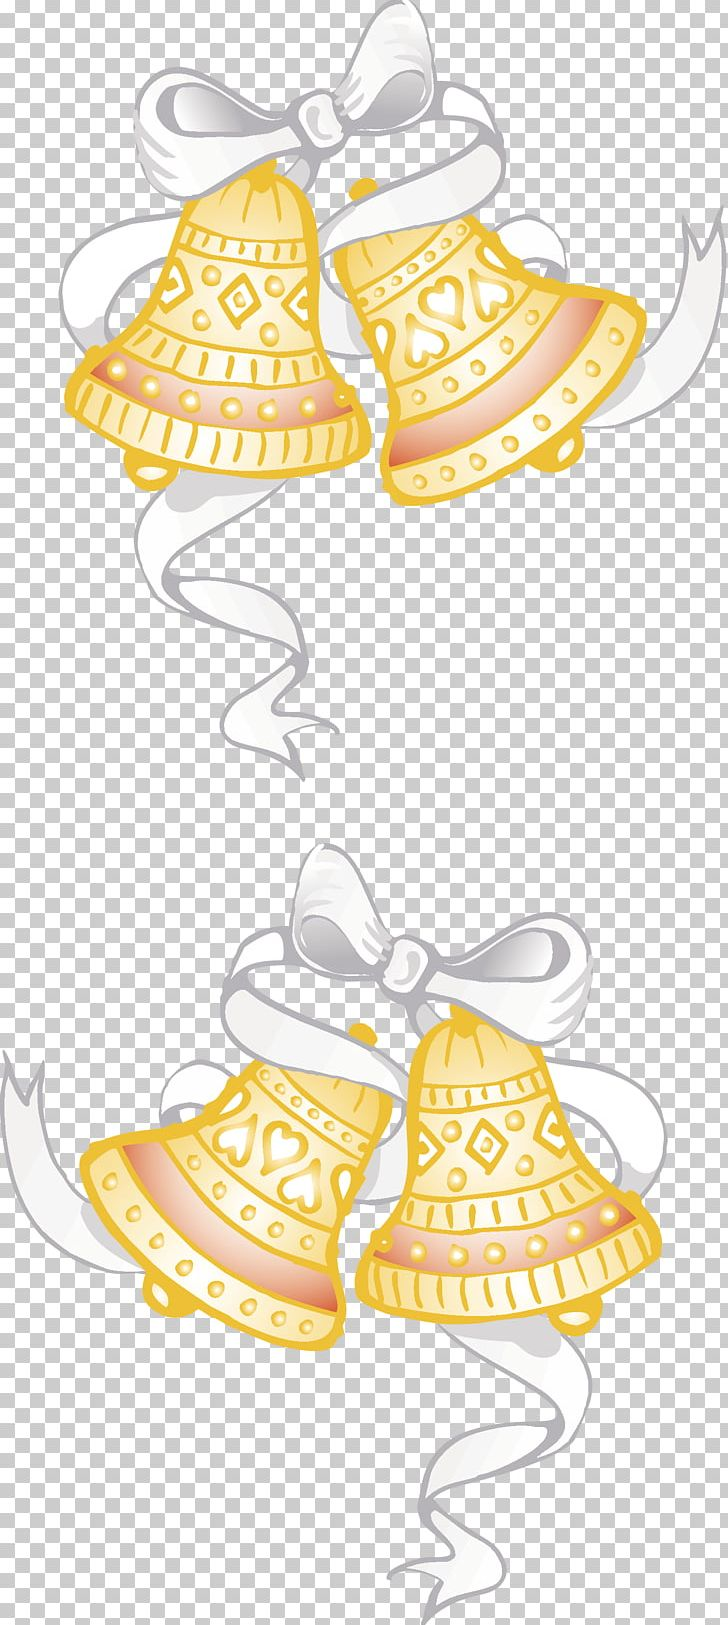 Wedding Invitation Bell PNG, Clipart, 50th Anniversary.